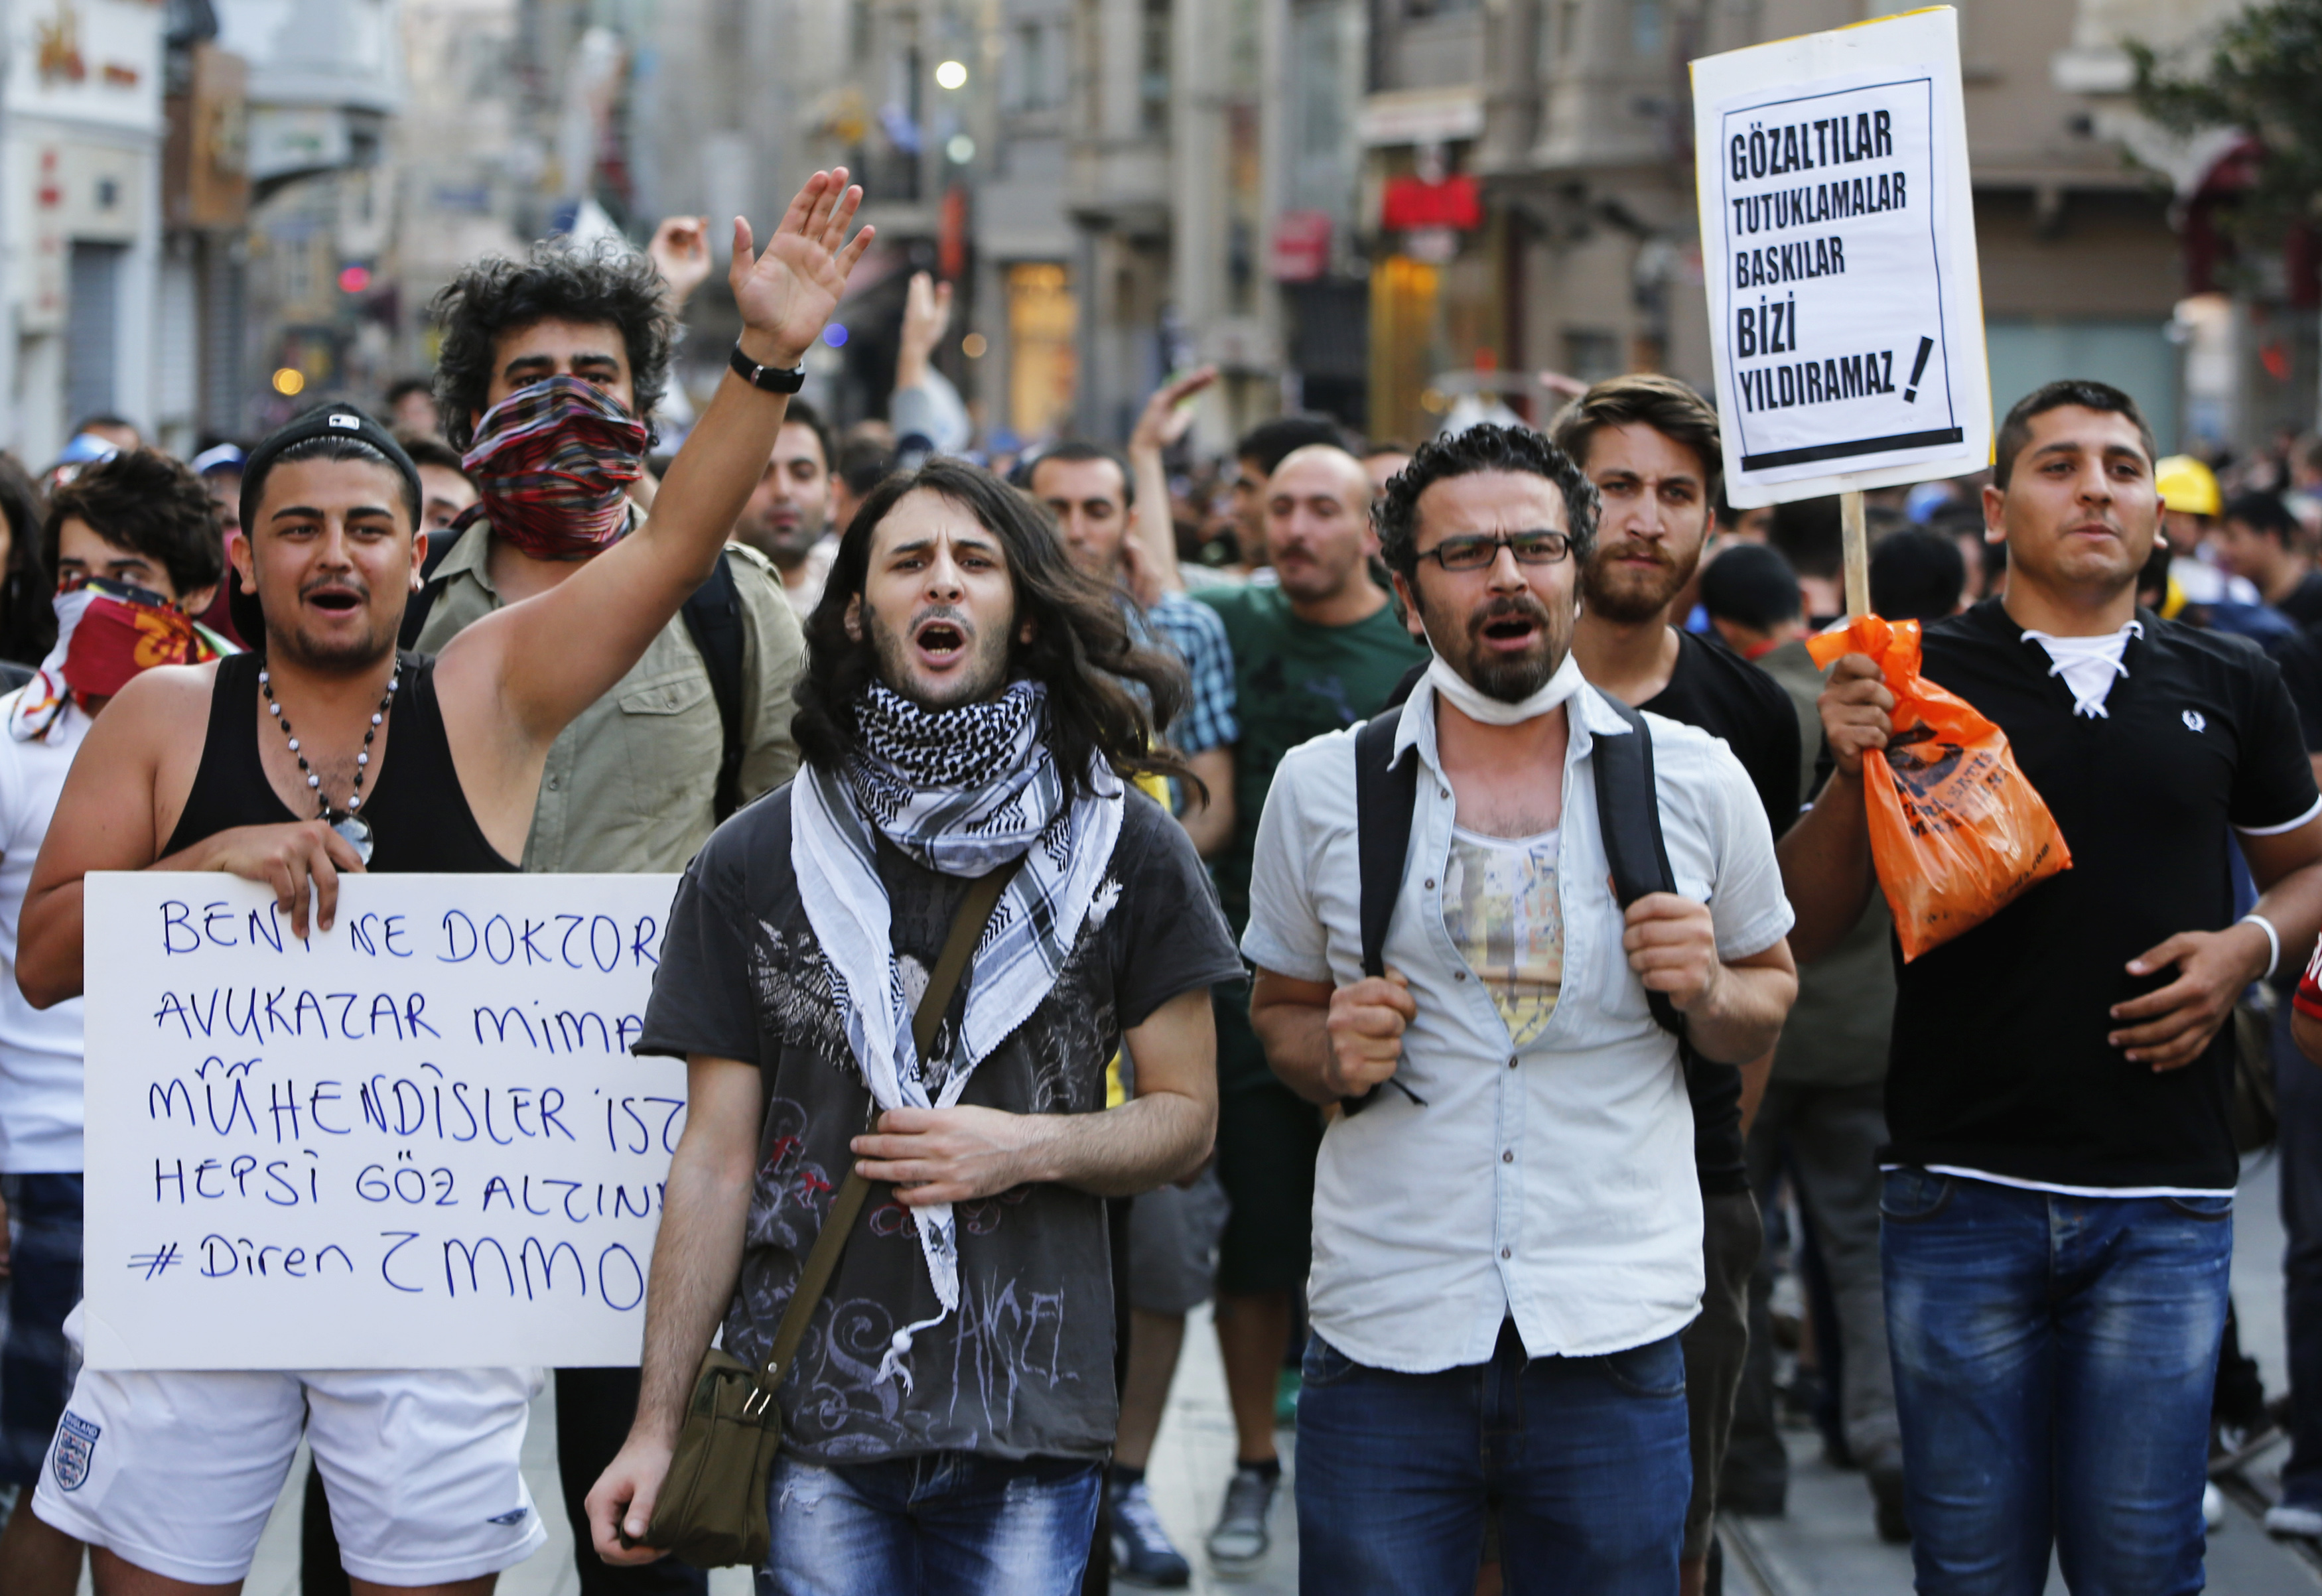 Turkey Revives Ghosts of Gezi Protests as Elections Loom